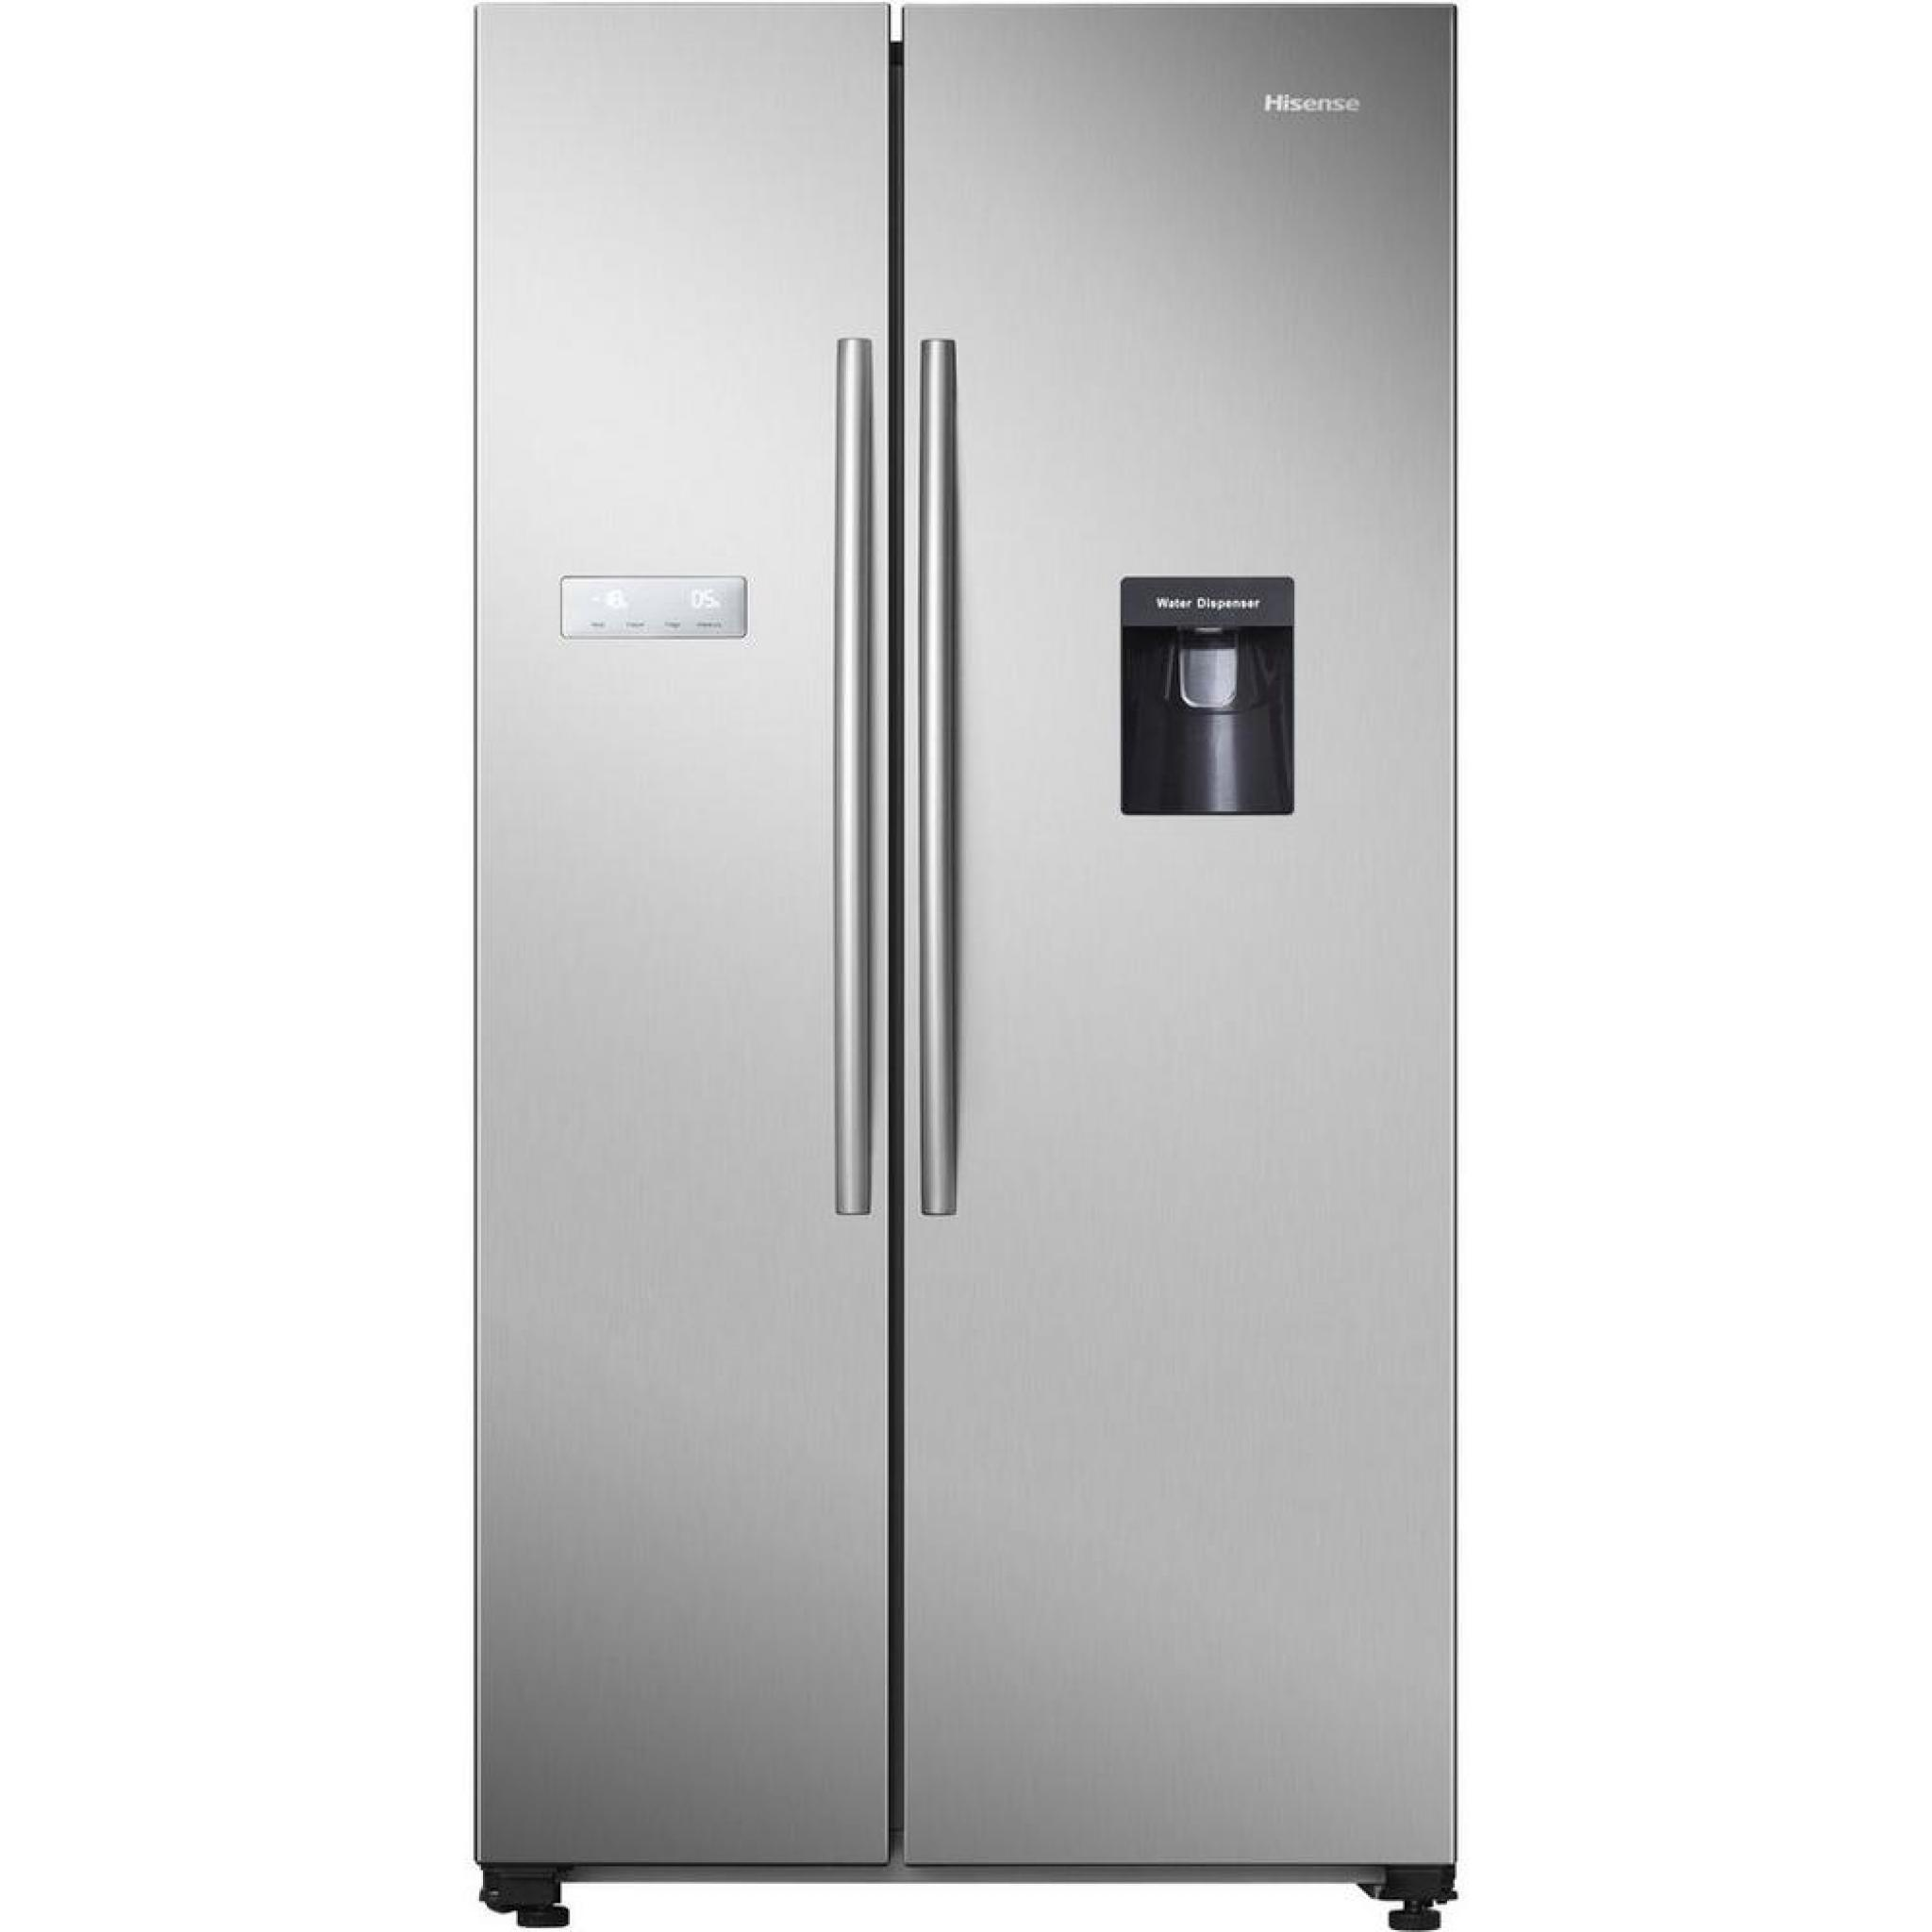 Hisense RS741N4WC11 American Fridge | Staines and Brights